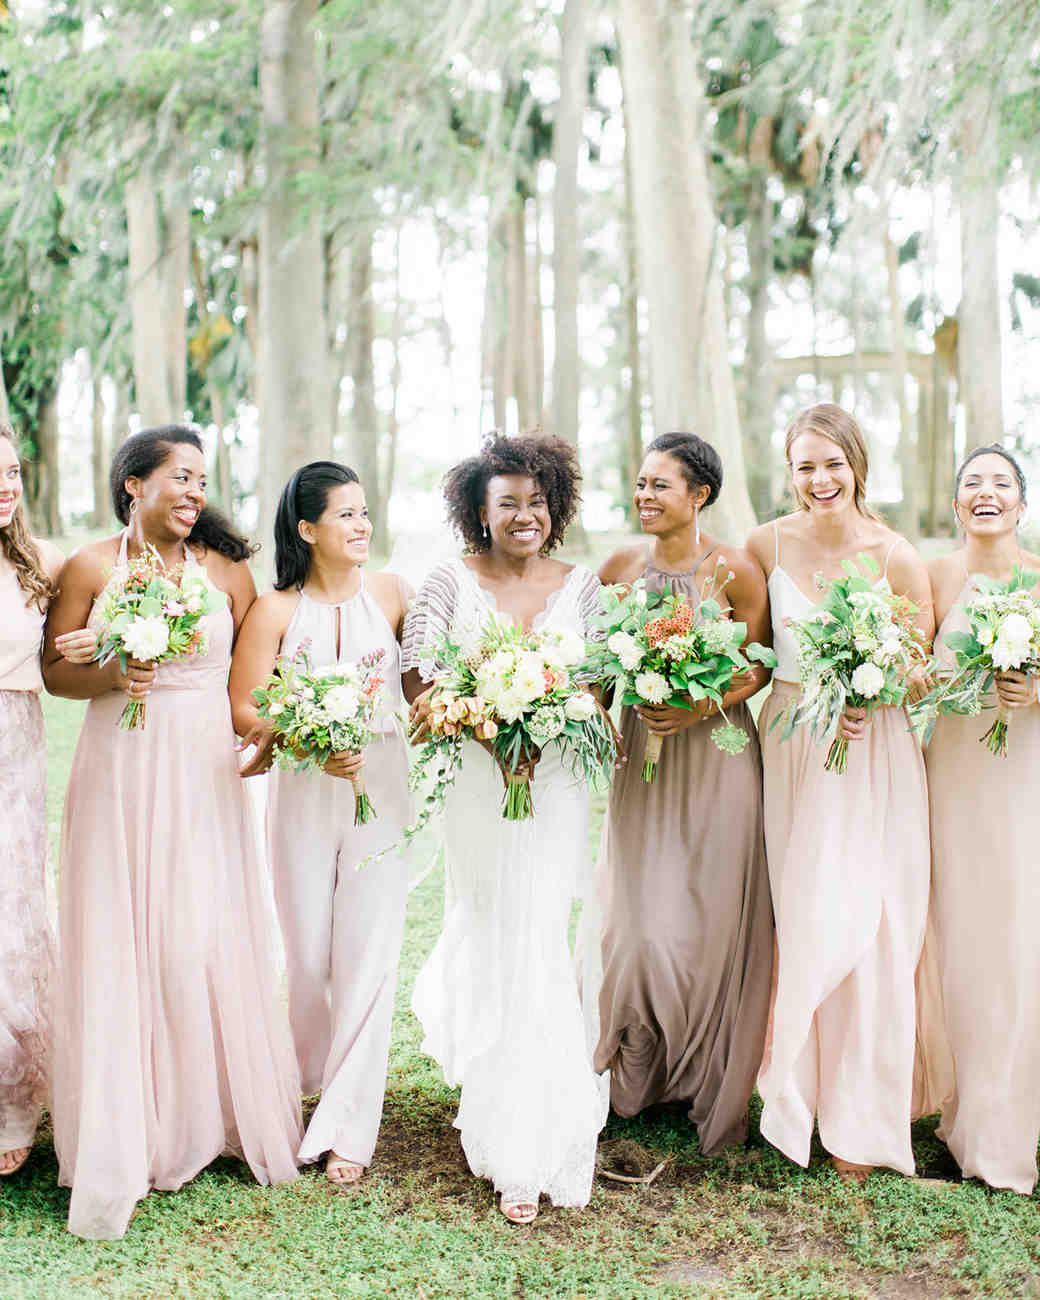 bridal party posing in front of trees featuring maid of honor wearing jumpsuit